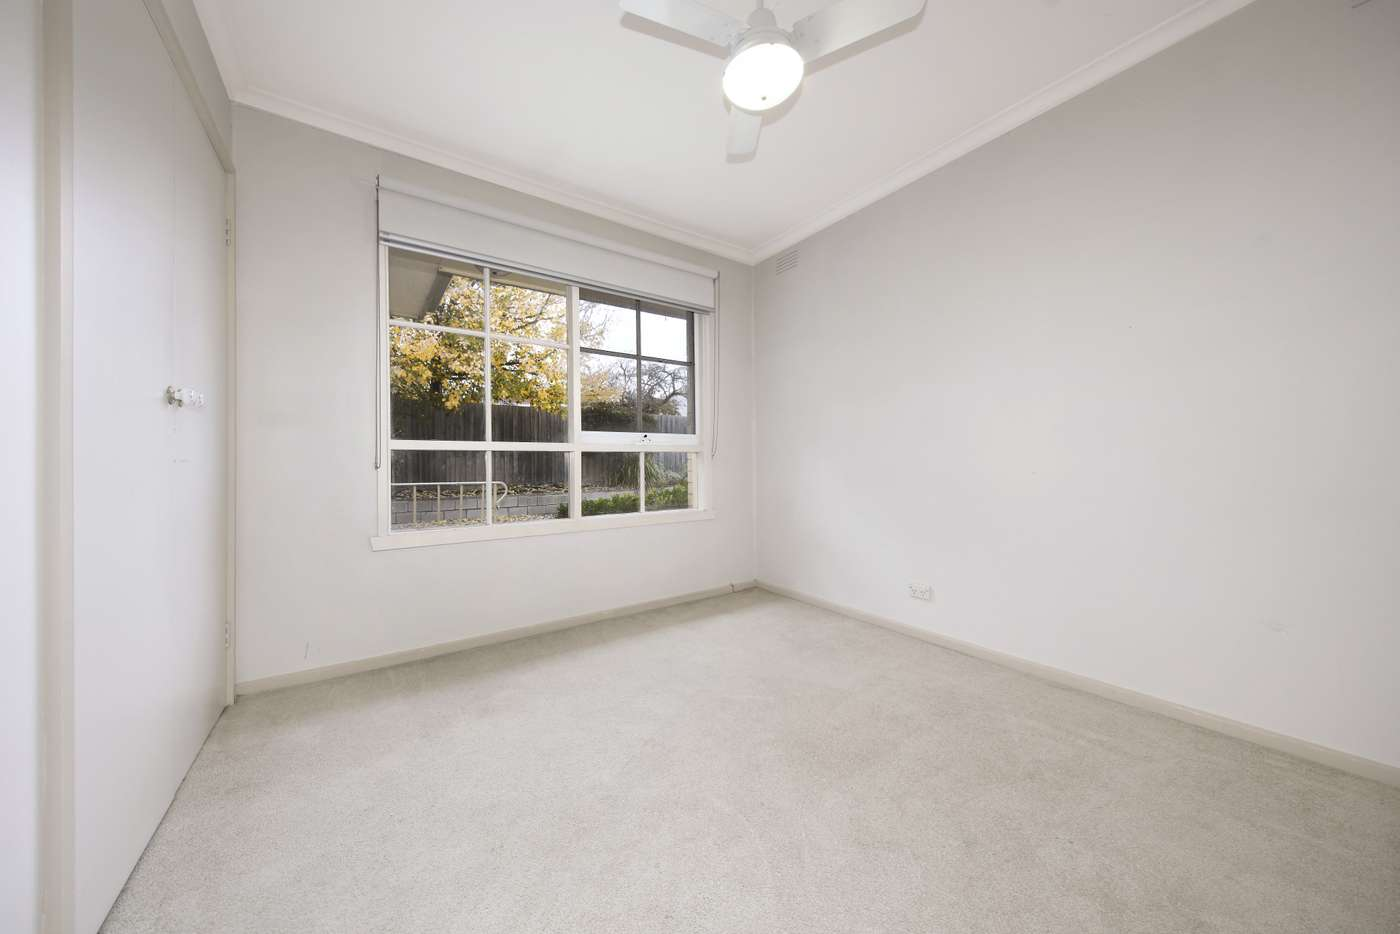 Sixth view of Homely unit listing, 10/37 Murray Road, Ormond VIC 3204